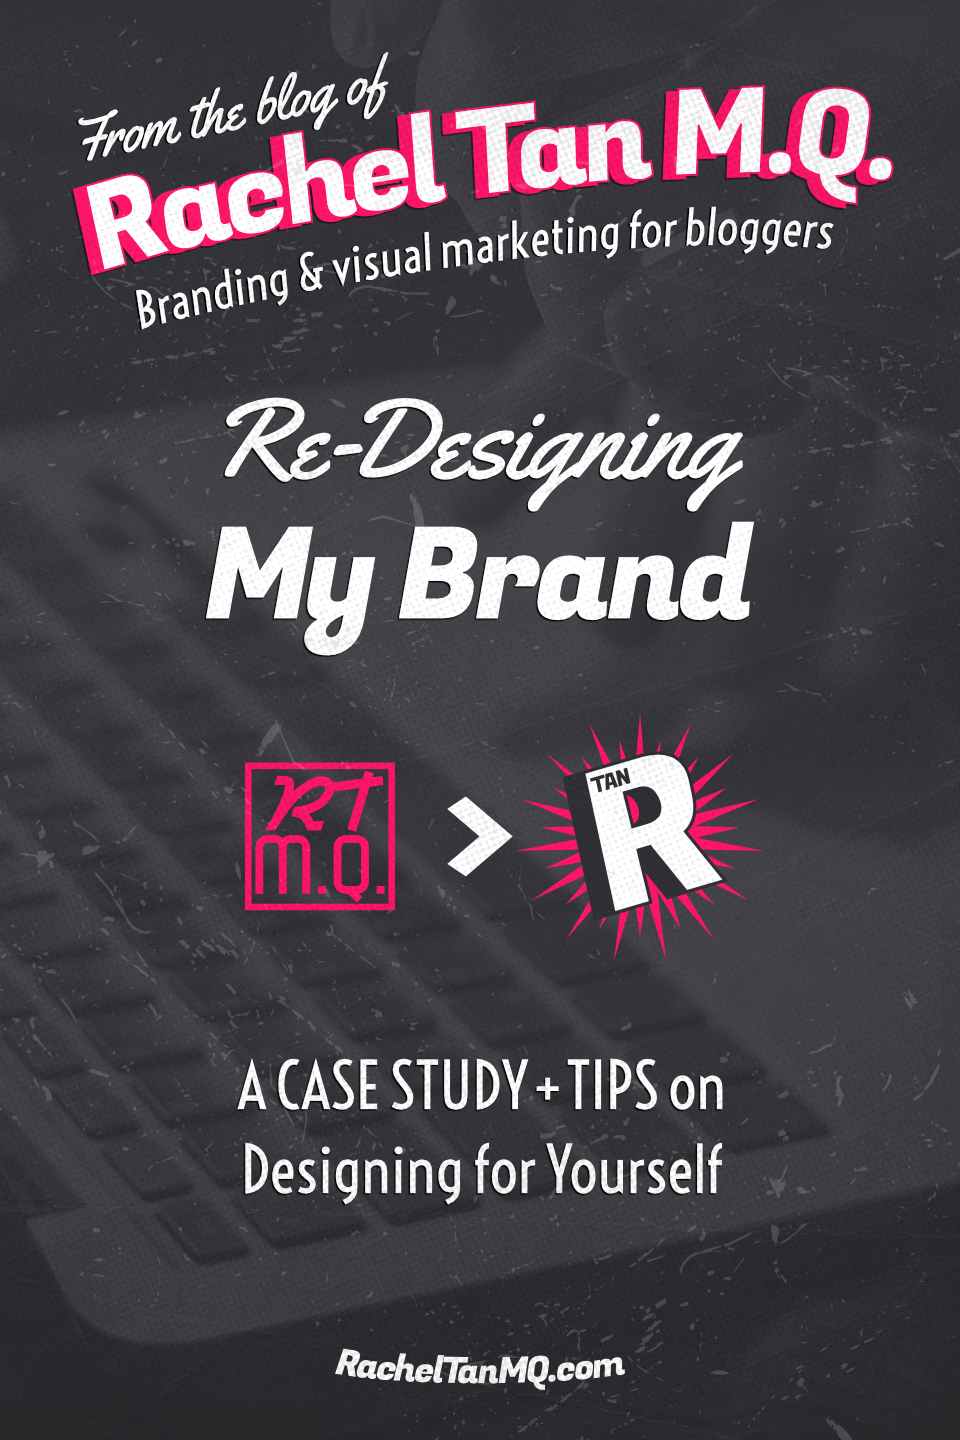 See my whole rebranding process and get tips on DIY-ing your own blog brand design! #branddesign #visualbranding #blogbranding #graphicdesigntips